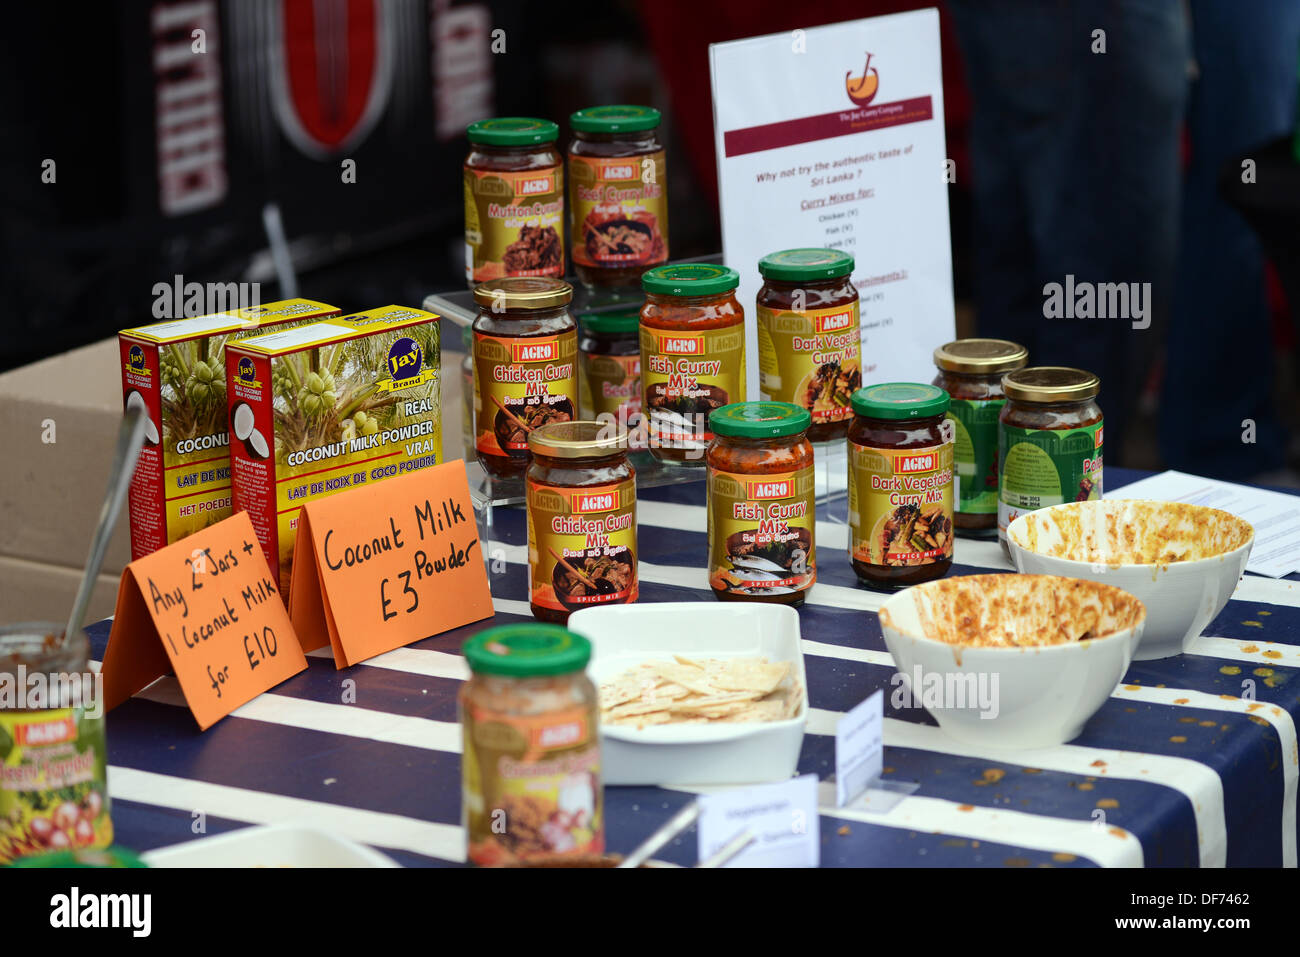 London, UK 29 Sept 2013 : Stall of Hot Chilli product's at Spitalfields City Farm. © See Li/Alamy Live News - Stock Image